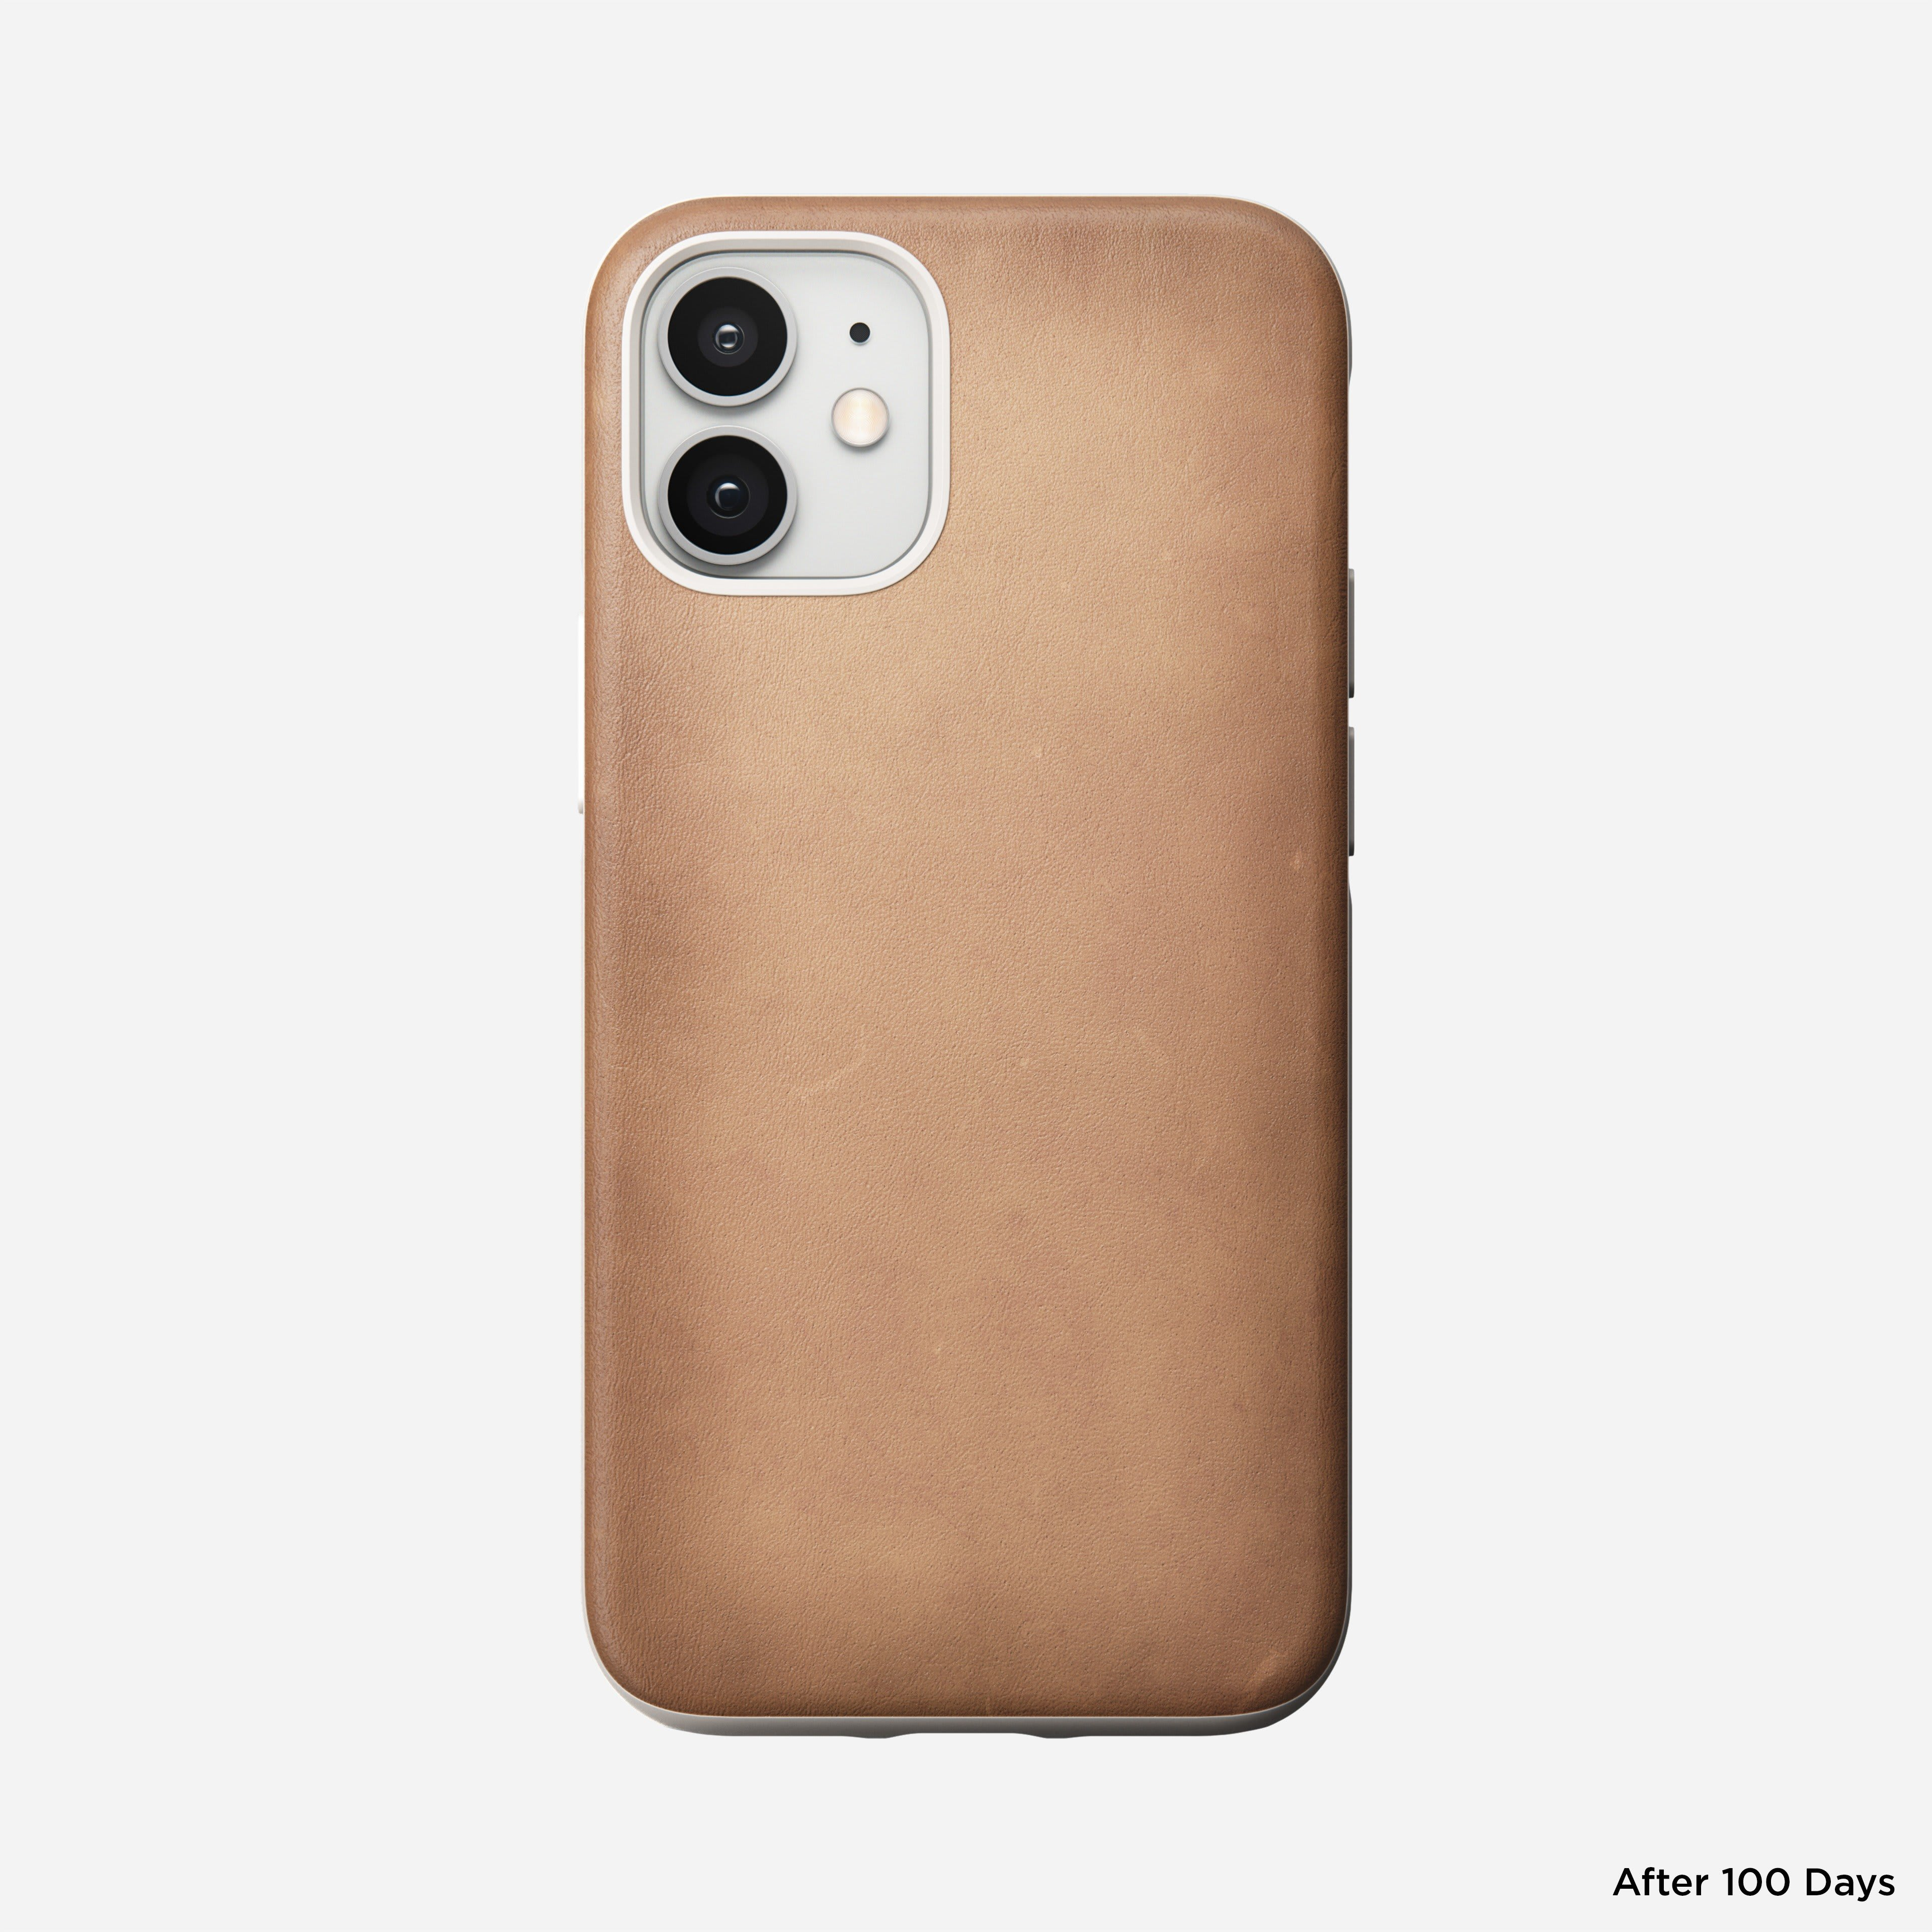 Rugged case horween leather natural iphone 12 mini